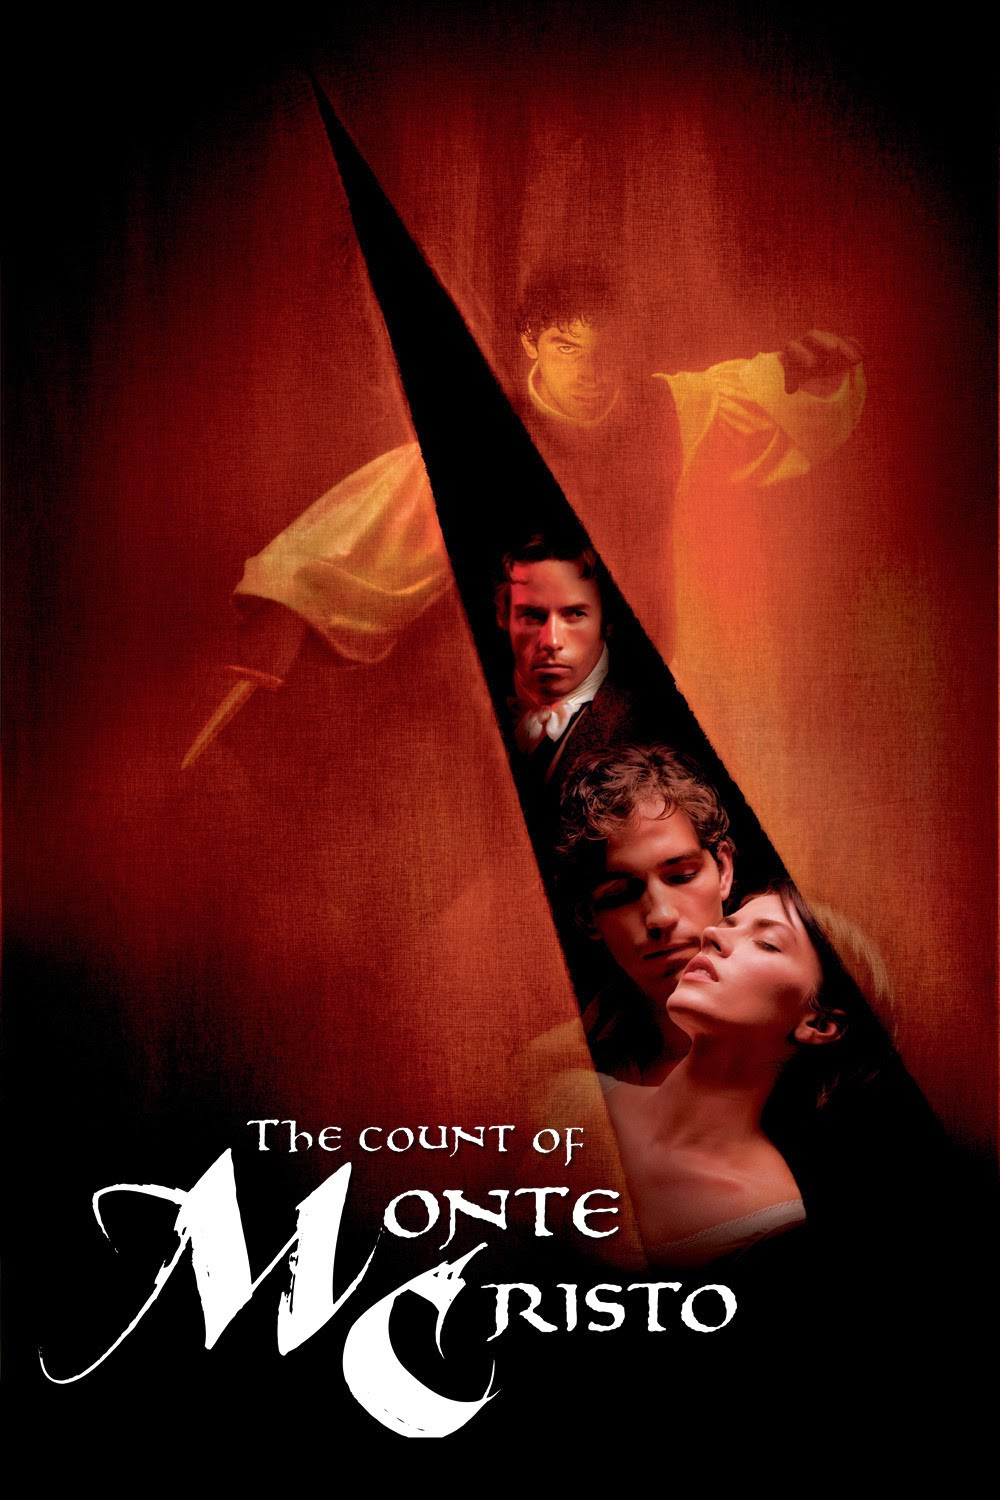 The Count of Monte Cristo - Ο Κόμης Μόντε Κρίστο (2002) ταινιες online seires oipeirates greek subs